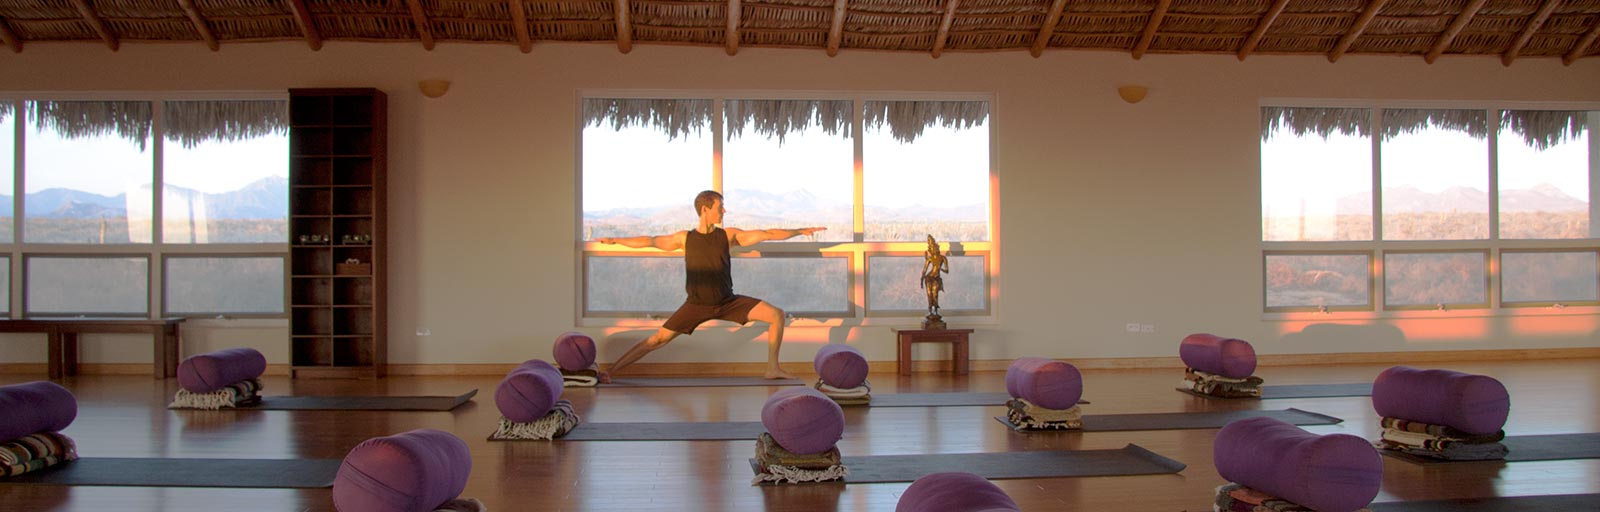 Mexico Yoga Retreat Studio Practicing At Sunset